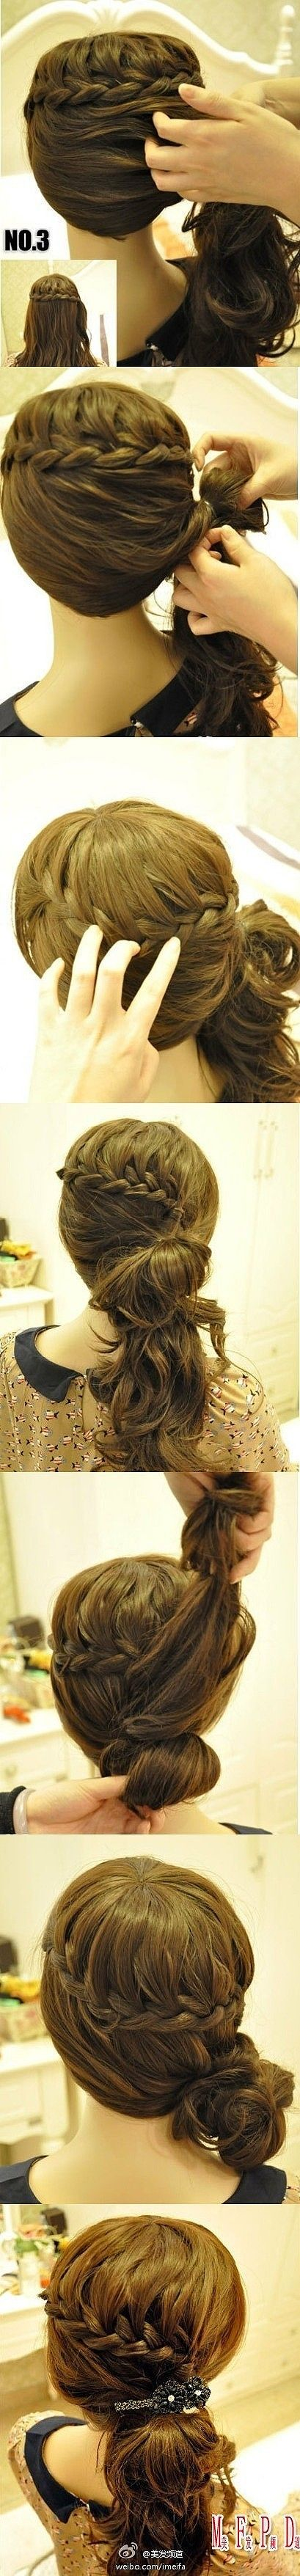 braid alternative